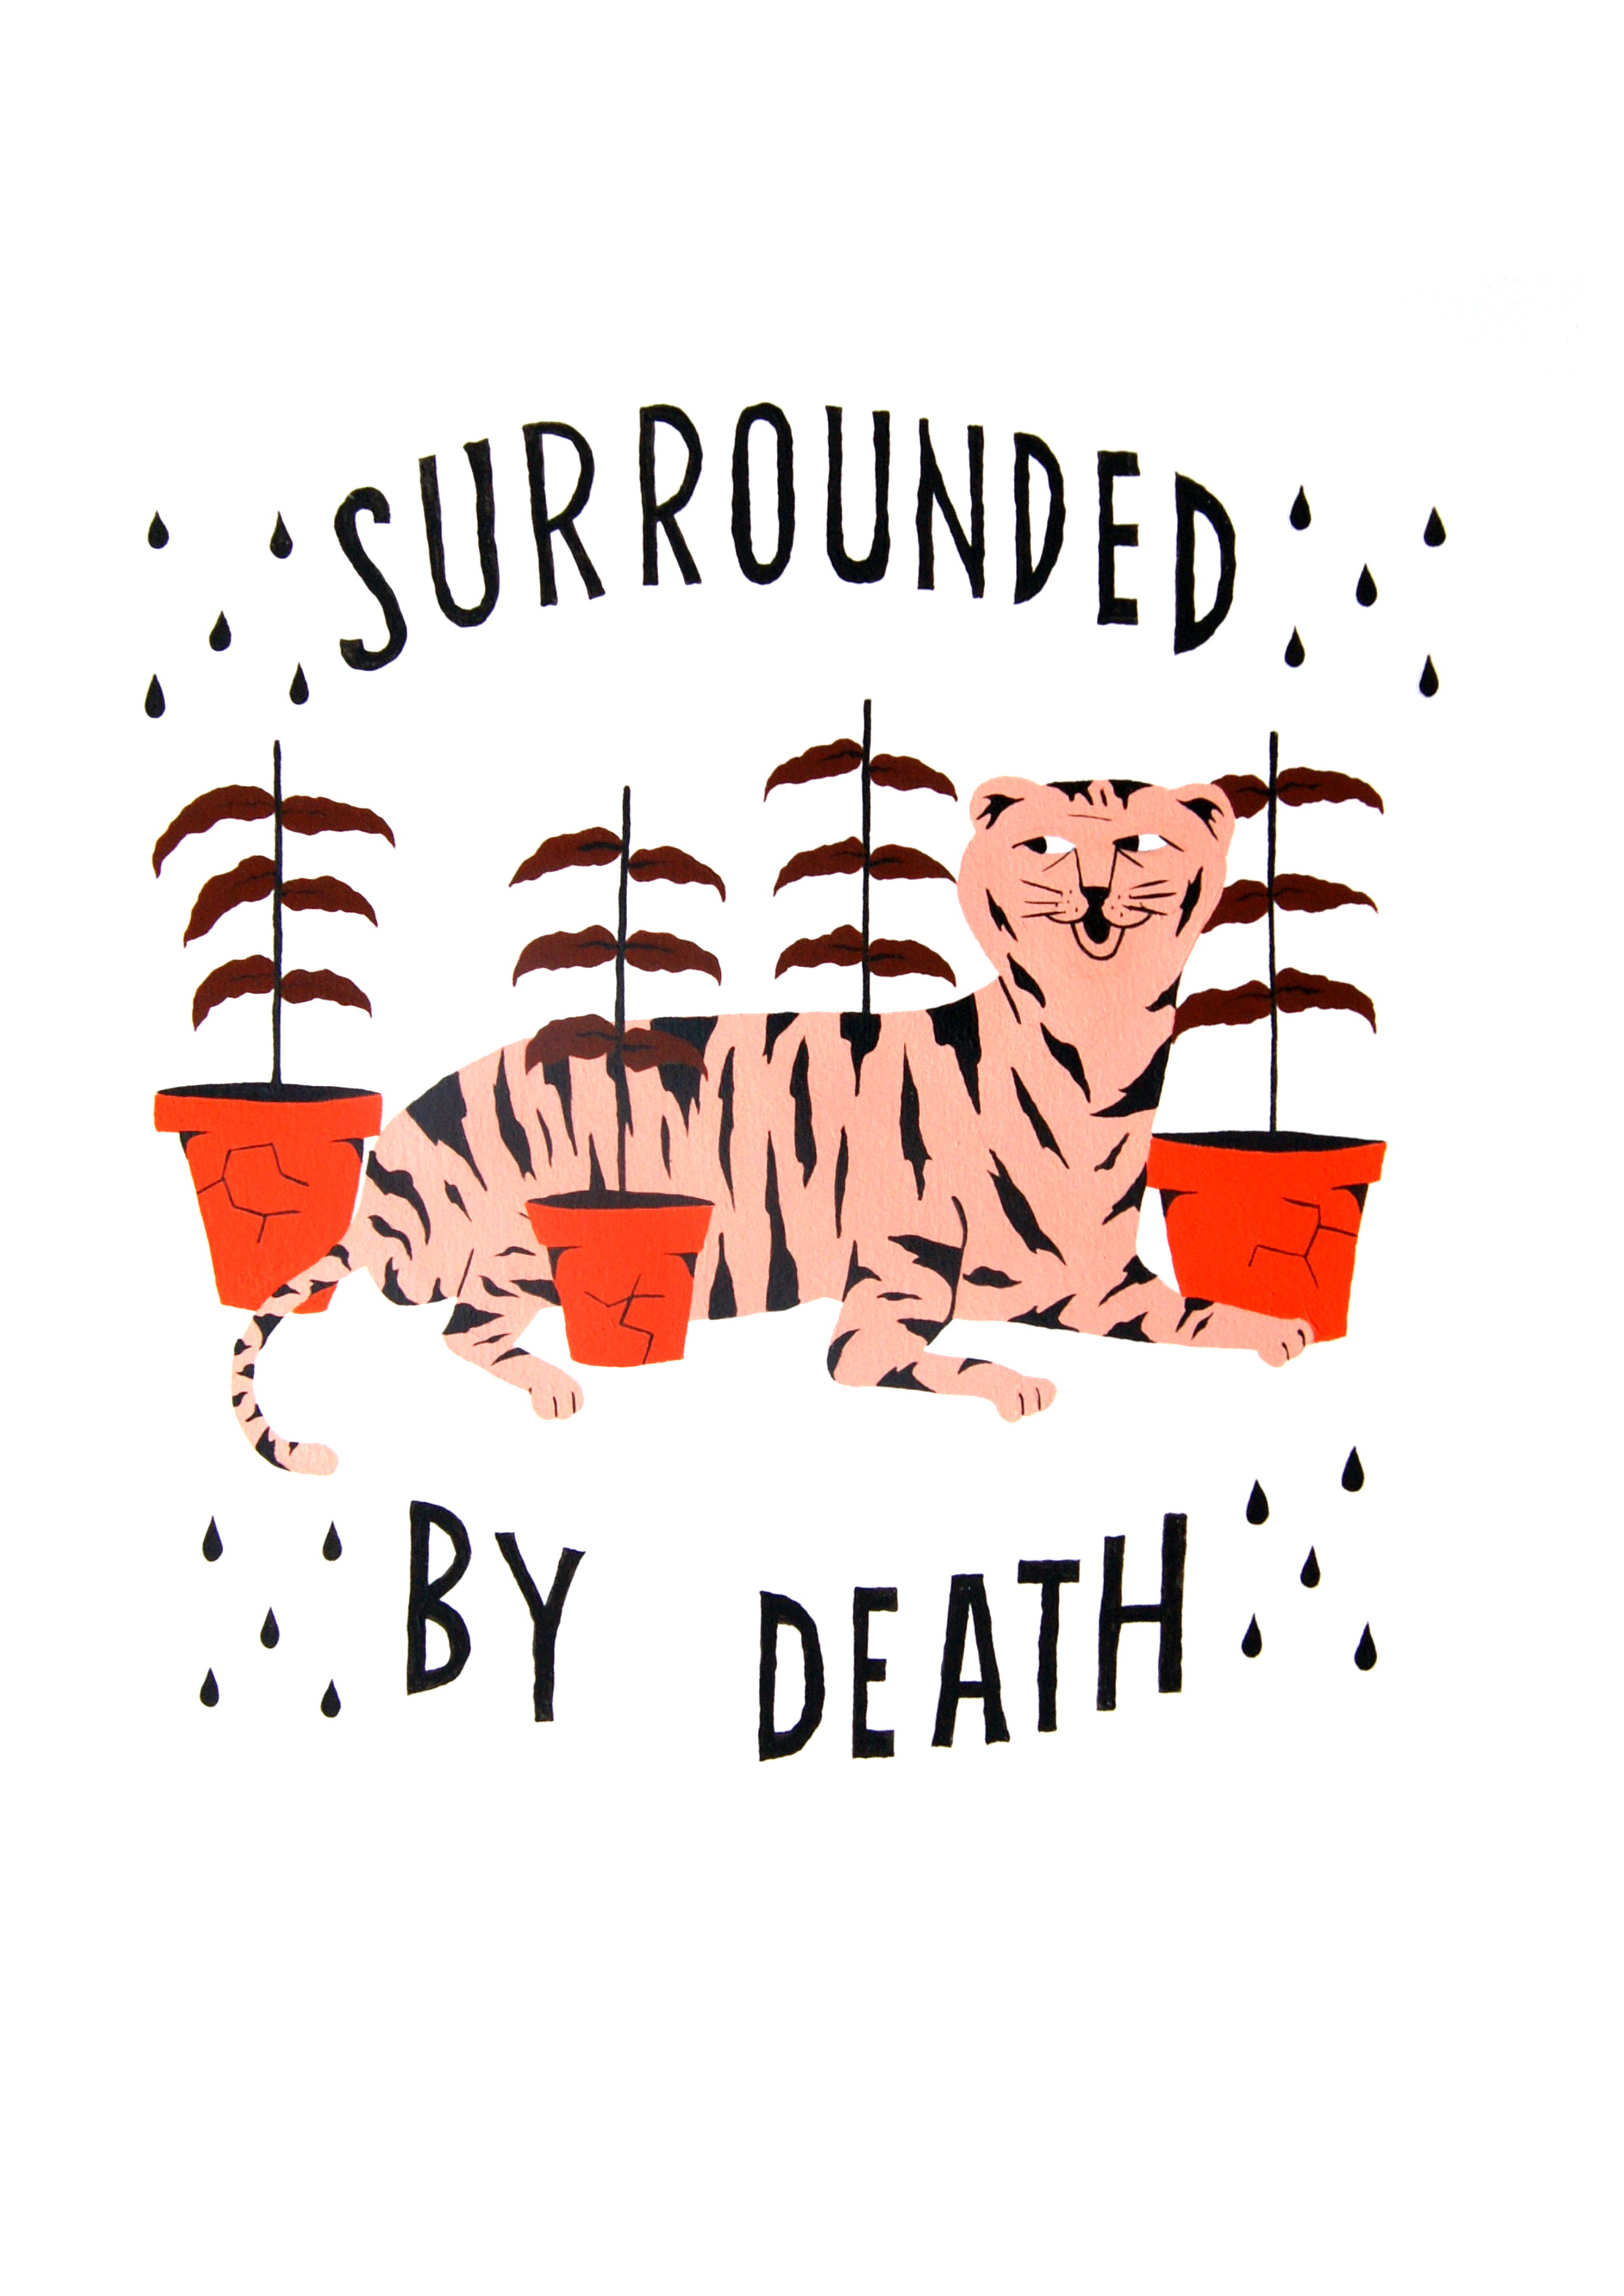 Surrounded By Death